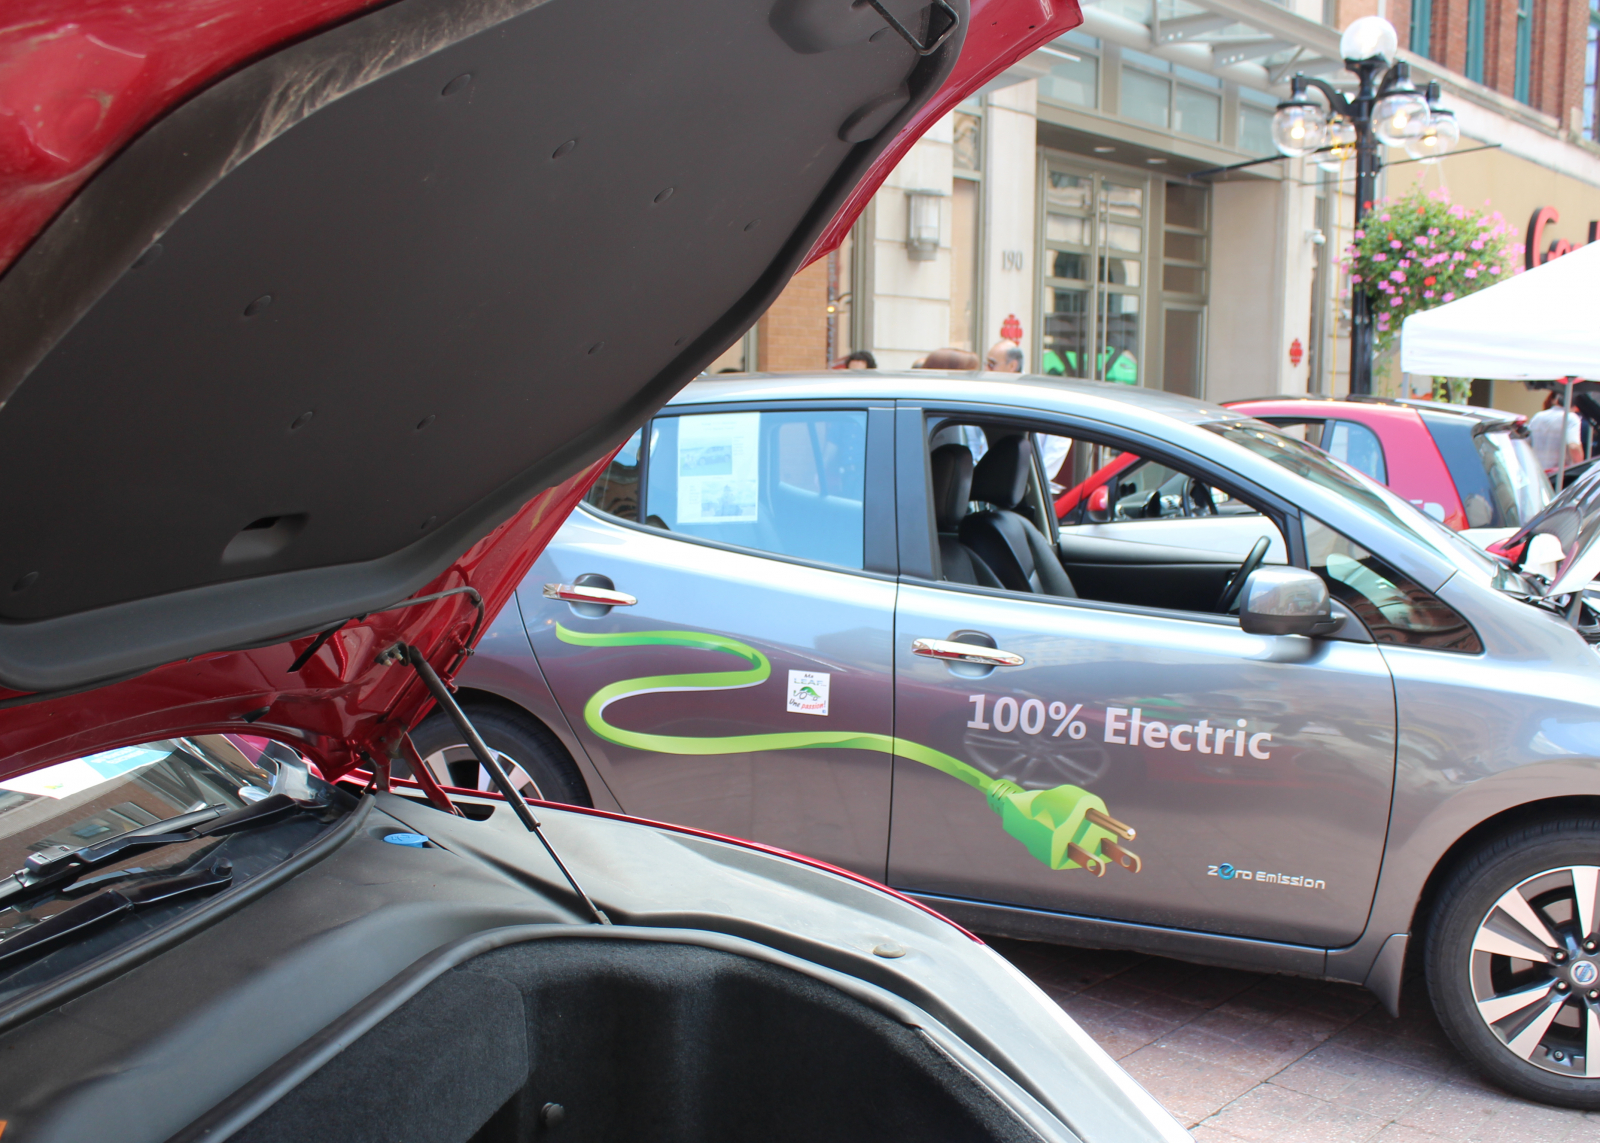 The 100% electric Nissan leaf